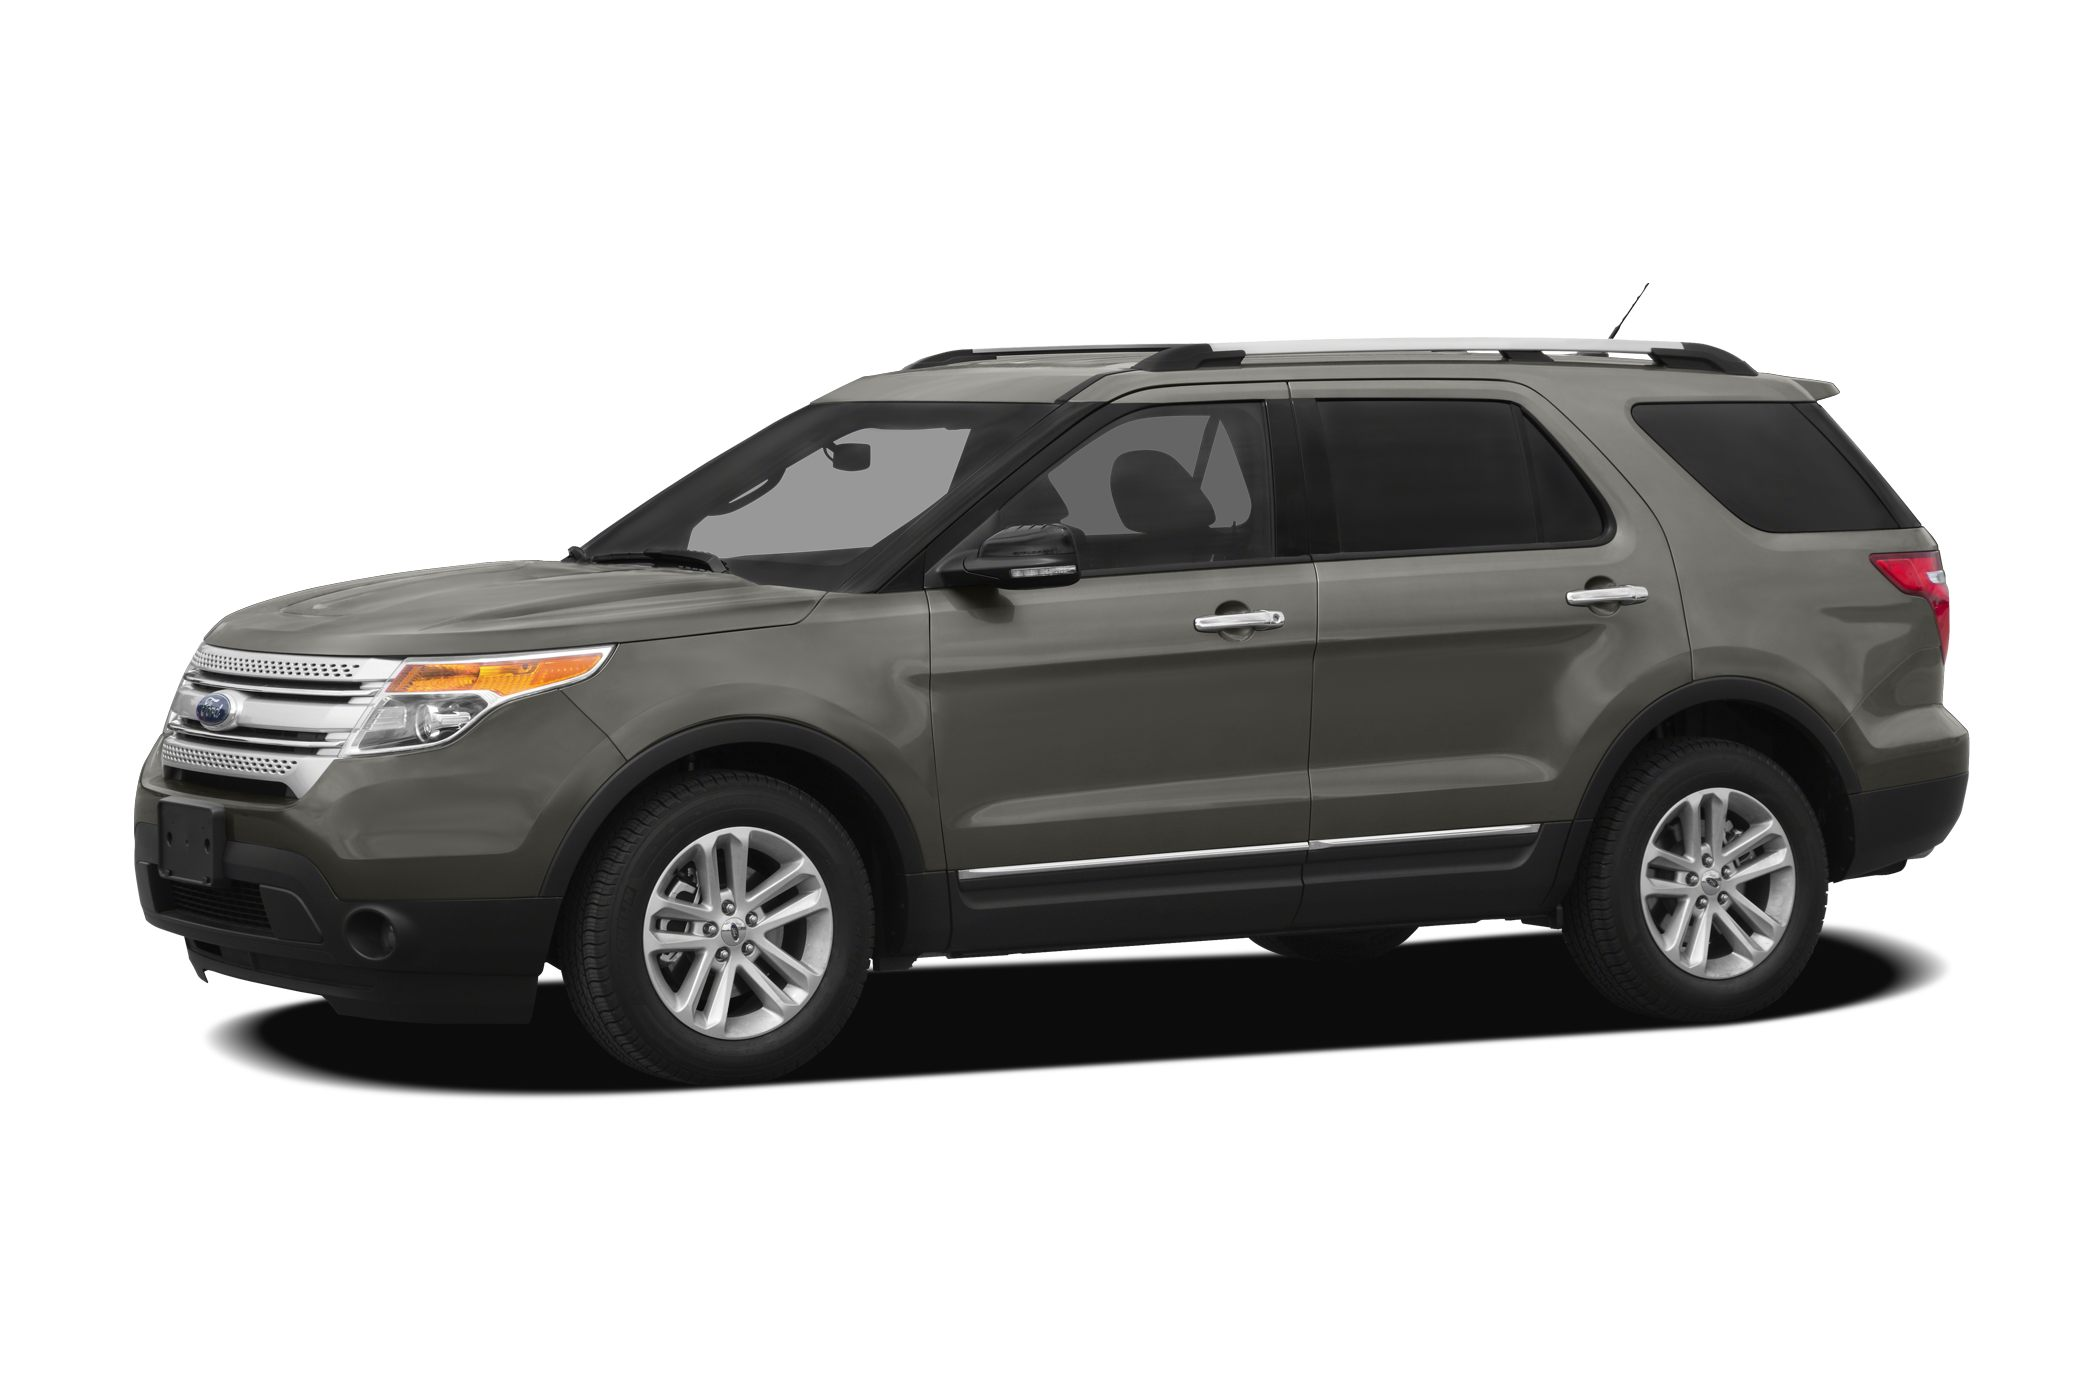 2012 Ford Explorer XLT COMPLIMENTARY ROYAL SHIELD VEHICLE LIMITED WARRANTY FOR 3 MONTHS OR 400